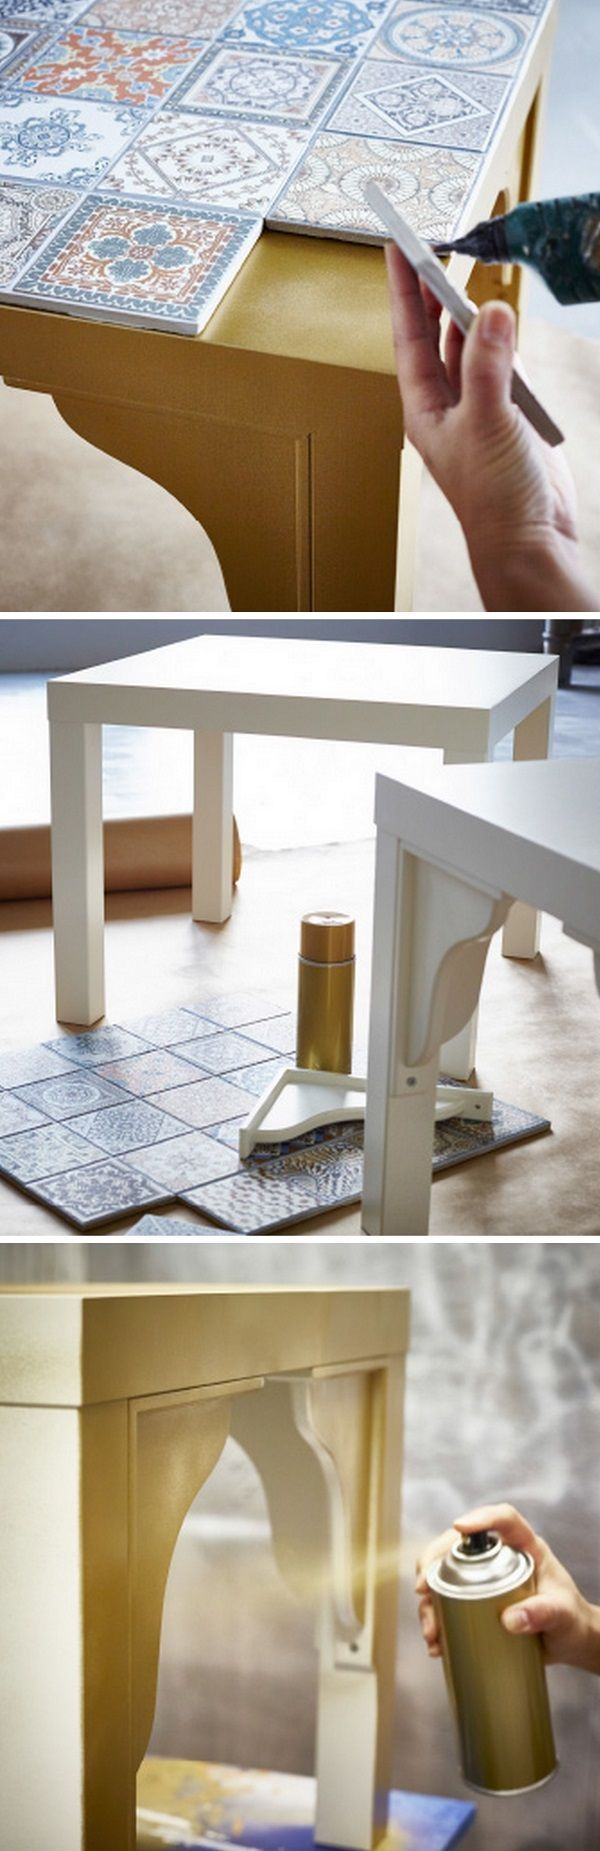 Check Out This Easy Idea On How To Make A Diy Mosaic Tile Tabletop For Living Room Homedecor On A Budget Project Crafts Diy Decor Mosaic Diy Furniture Diy